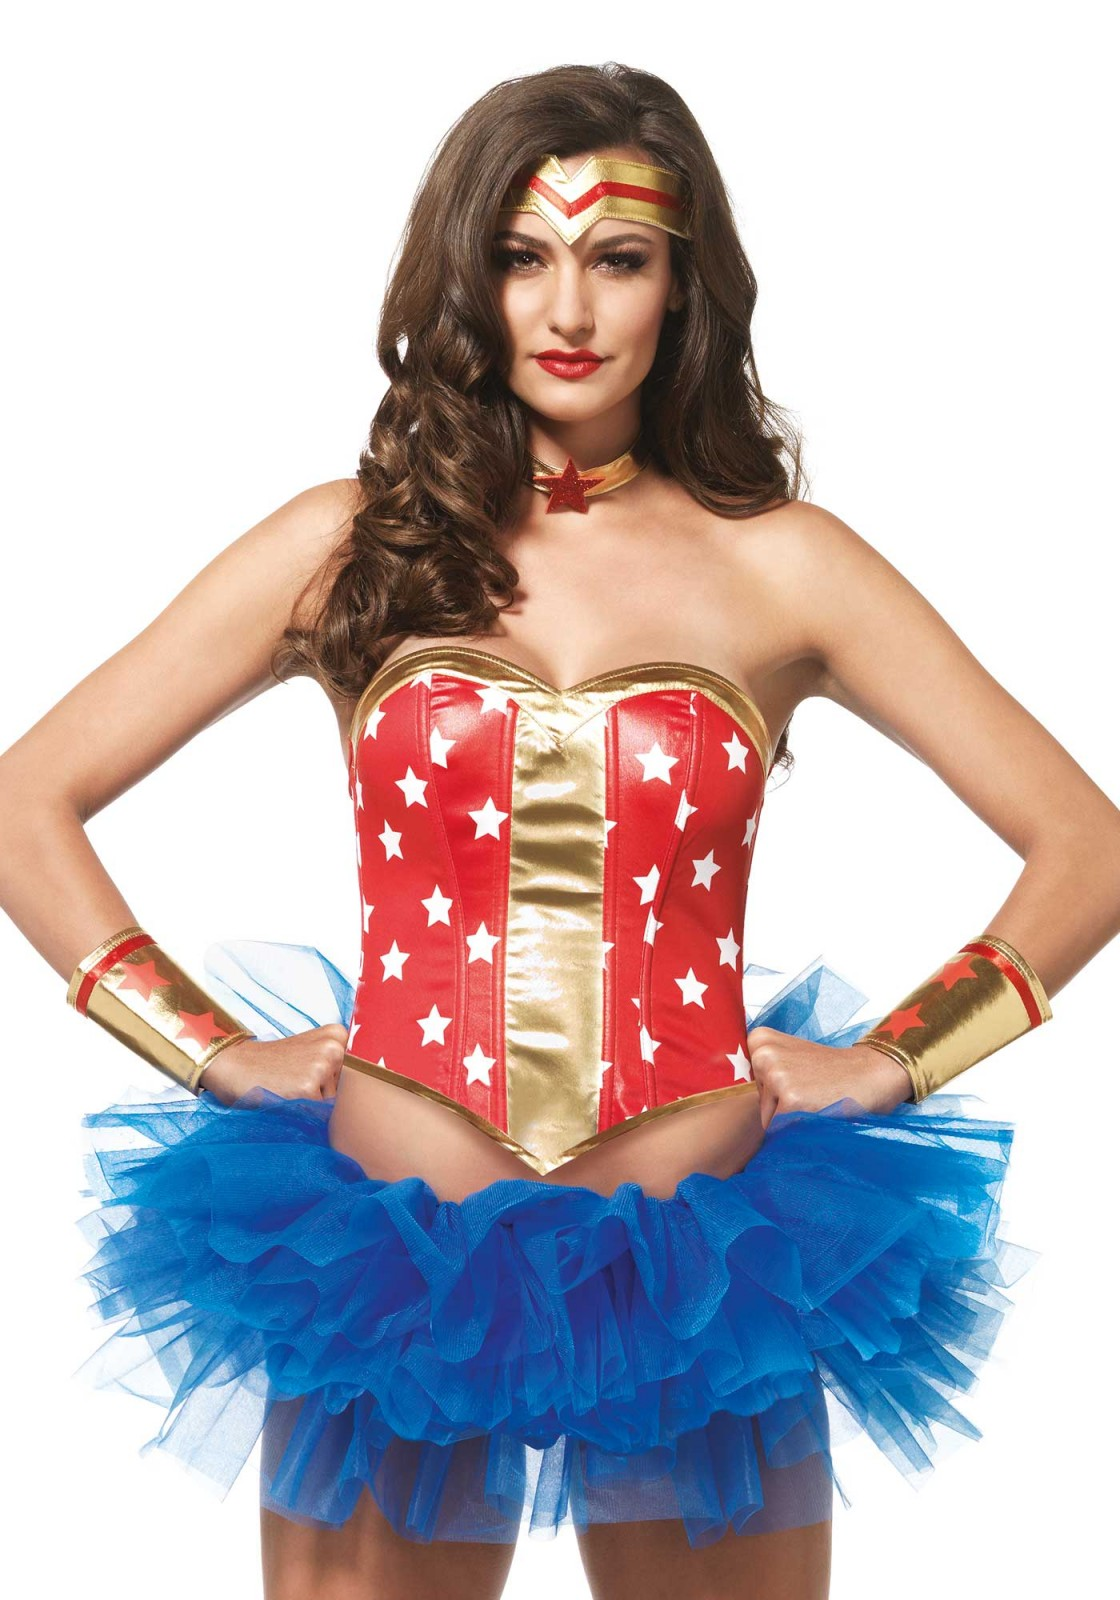 Saving the world was never this easy. This Super Star Hero accessoiries kit is all you need. This marvel kit includes a star print bustier, golden arm cuffs, choker with a star, and a matching headband. Please take note that tutu and leggings are not included.